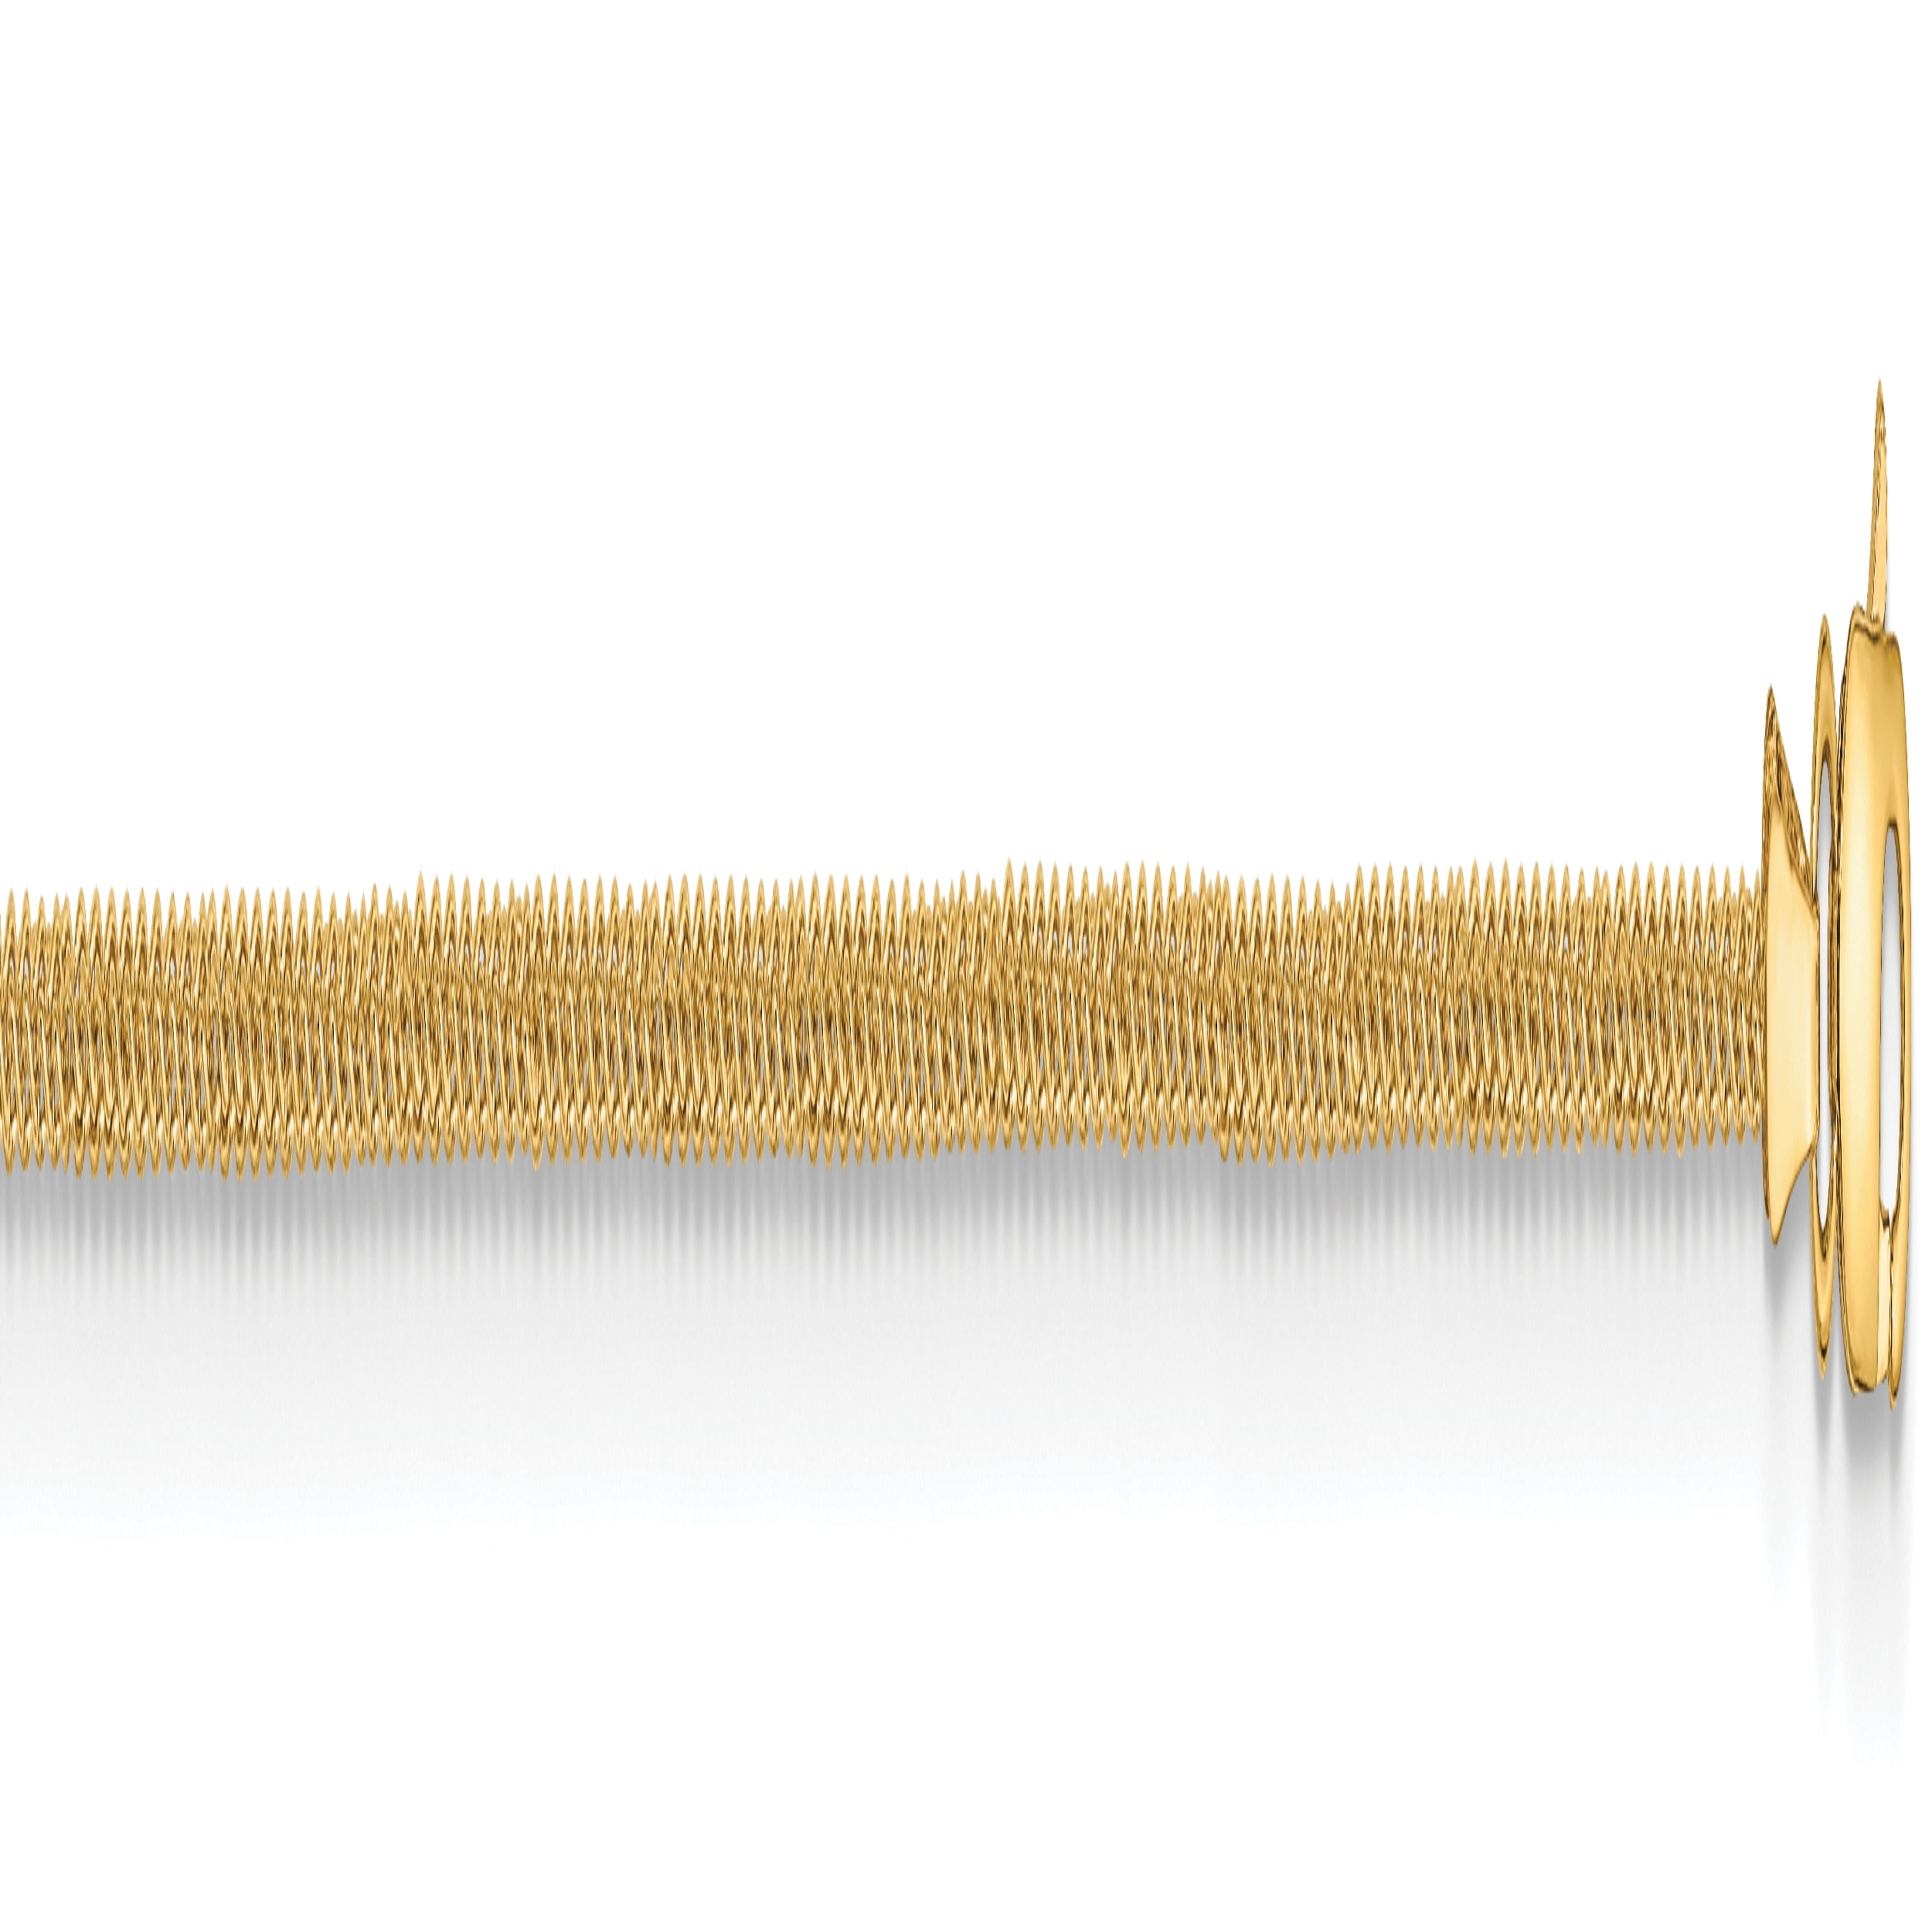 10k 1.25mm Spiga Chain Anklet. Weight: 1.68,  Length: 10